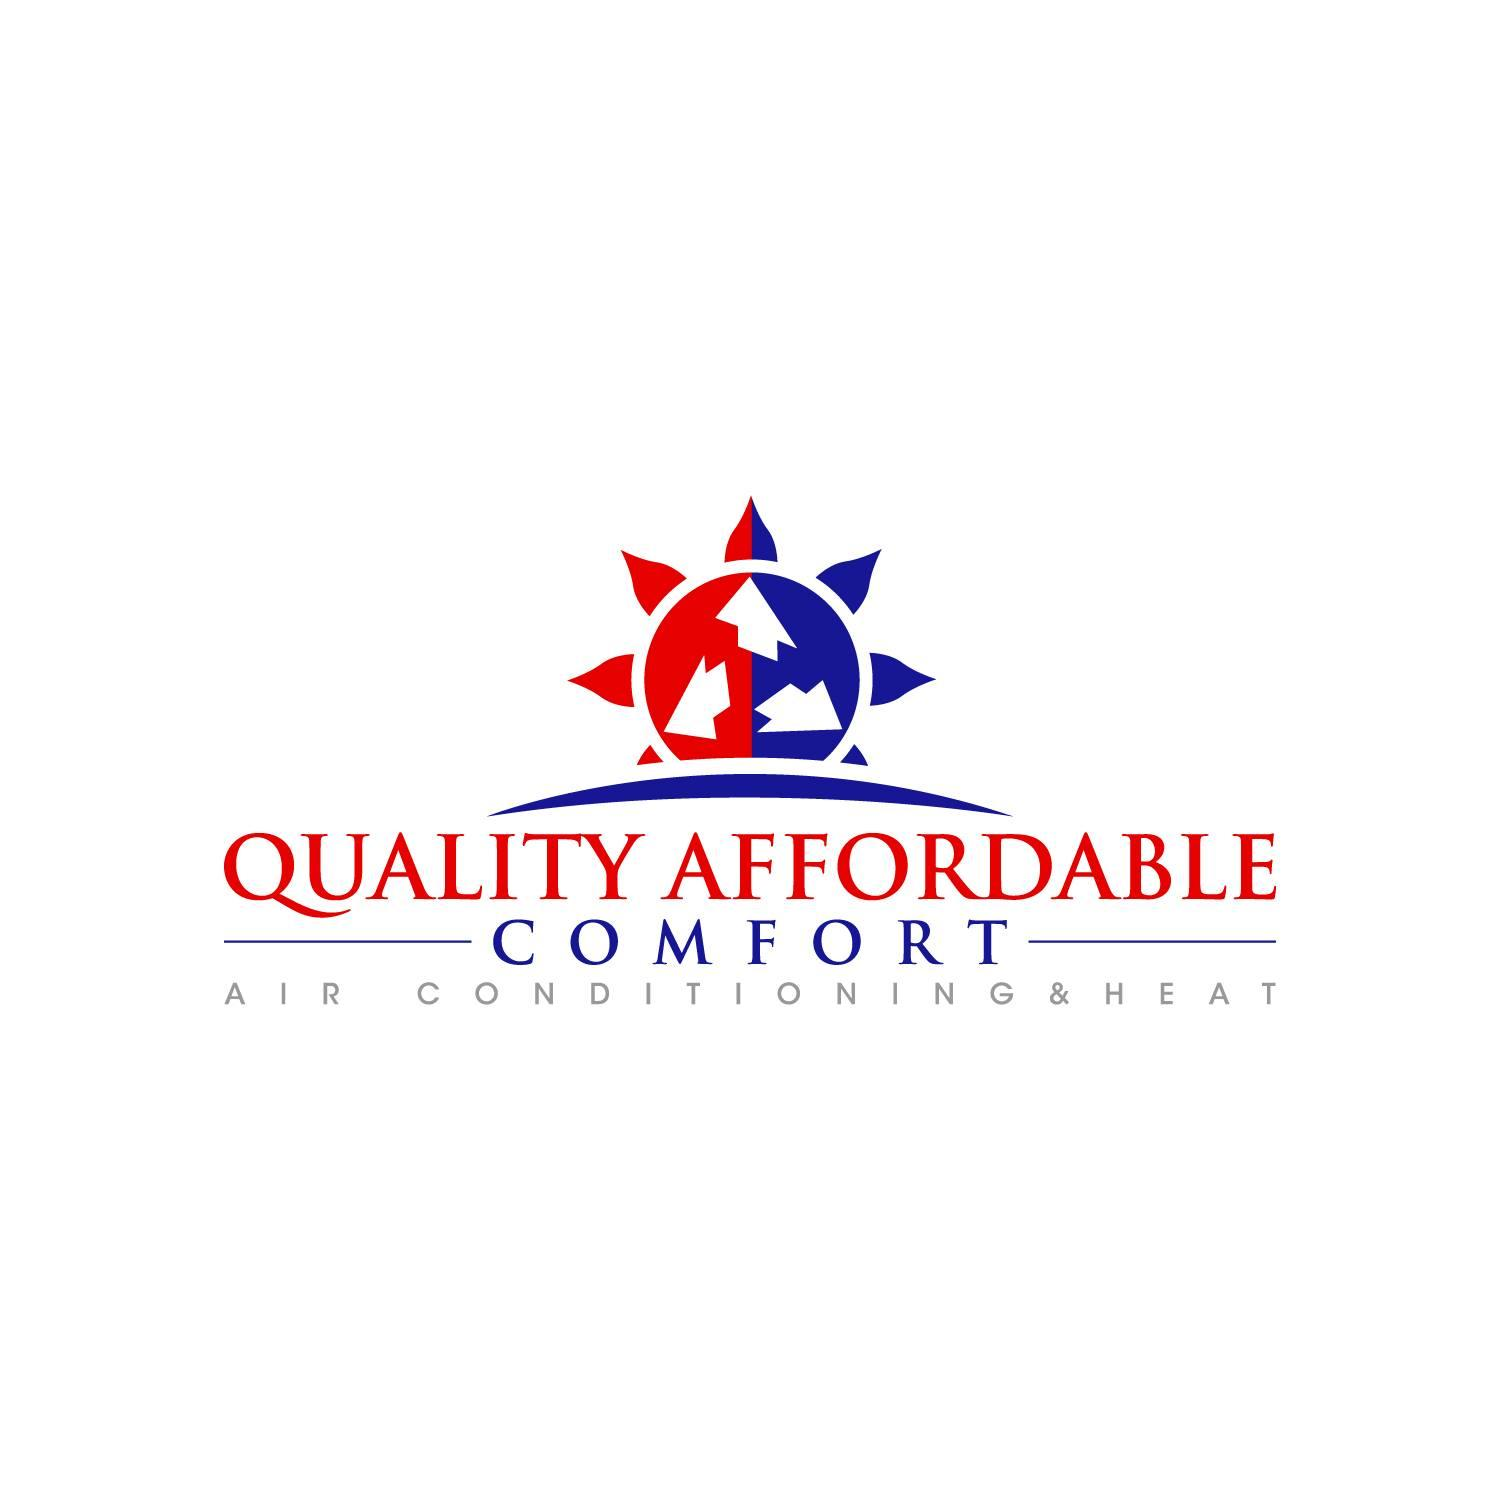 Quality Affordable Comfort Air Conditioning & Heat image 9